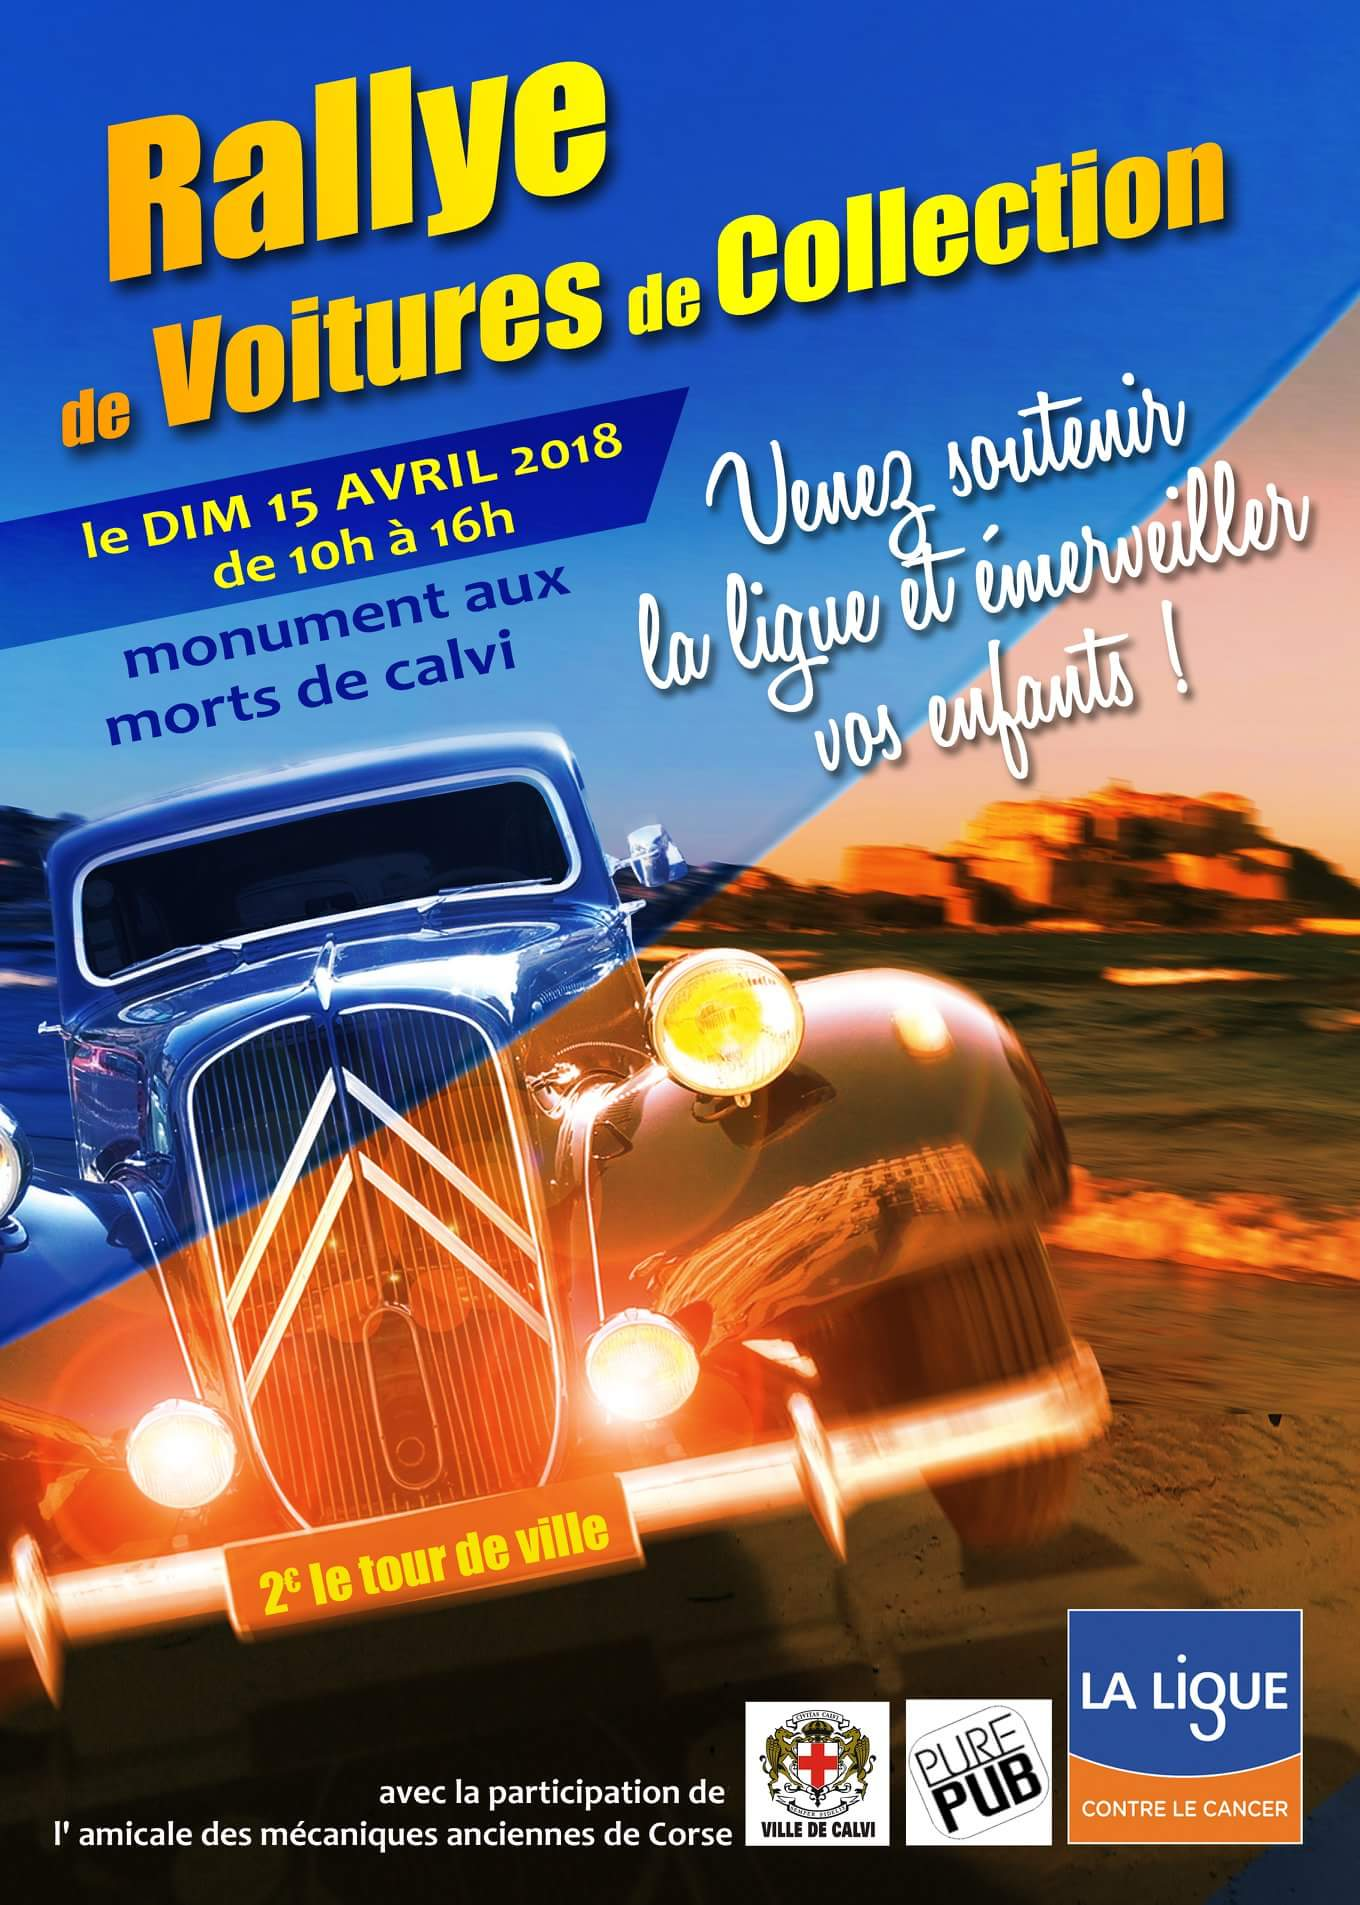 Rallye de voitures de collection le 15 avril à Calvi